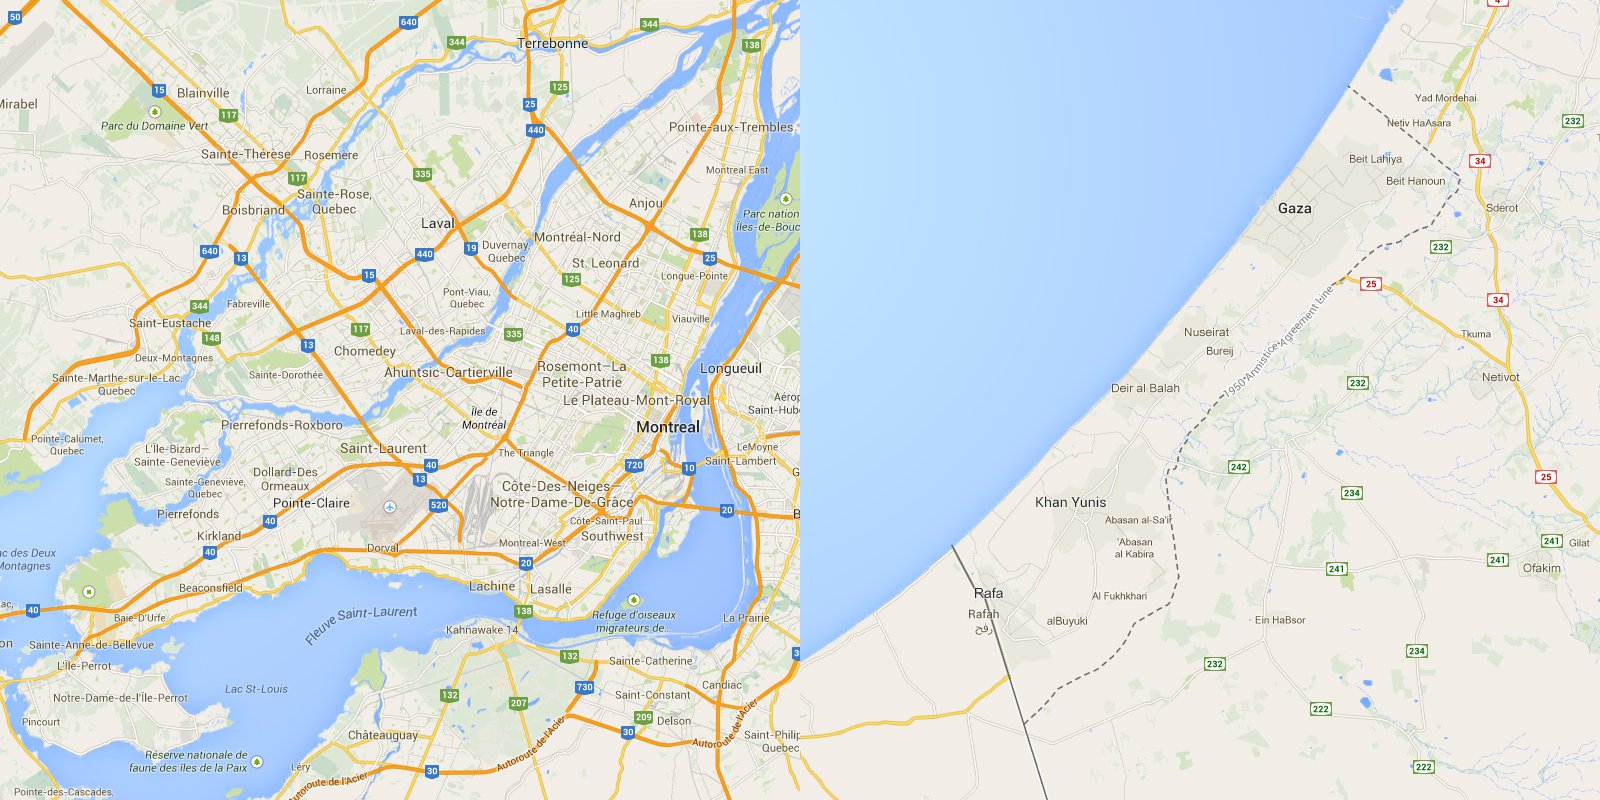 Map of Montreal vs Gaza